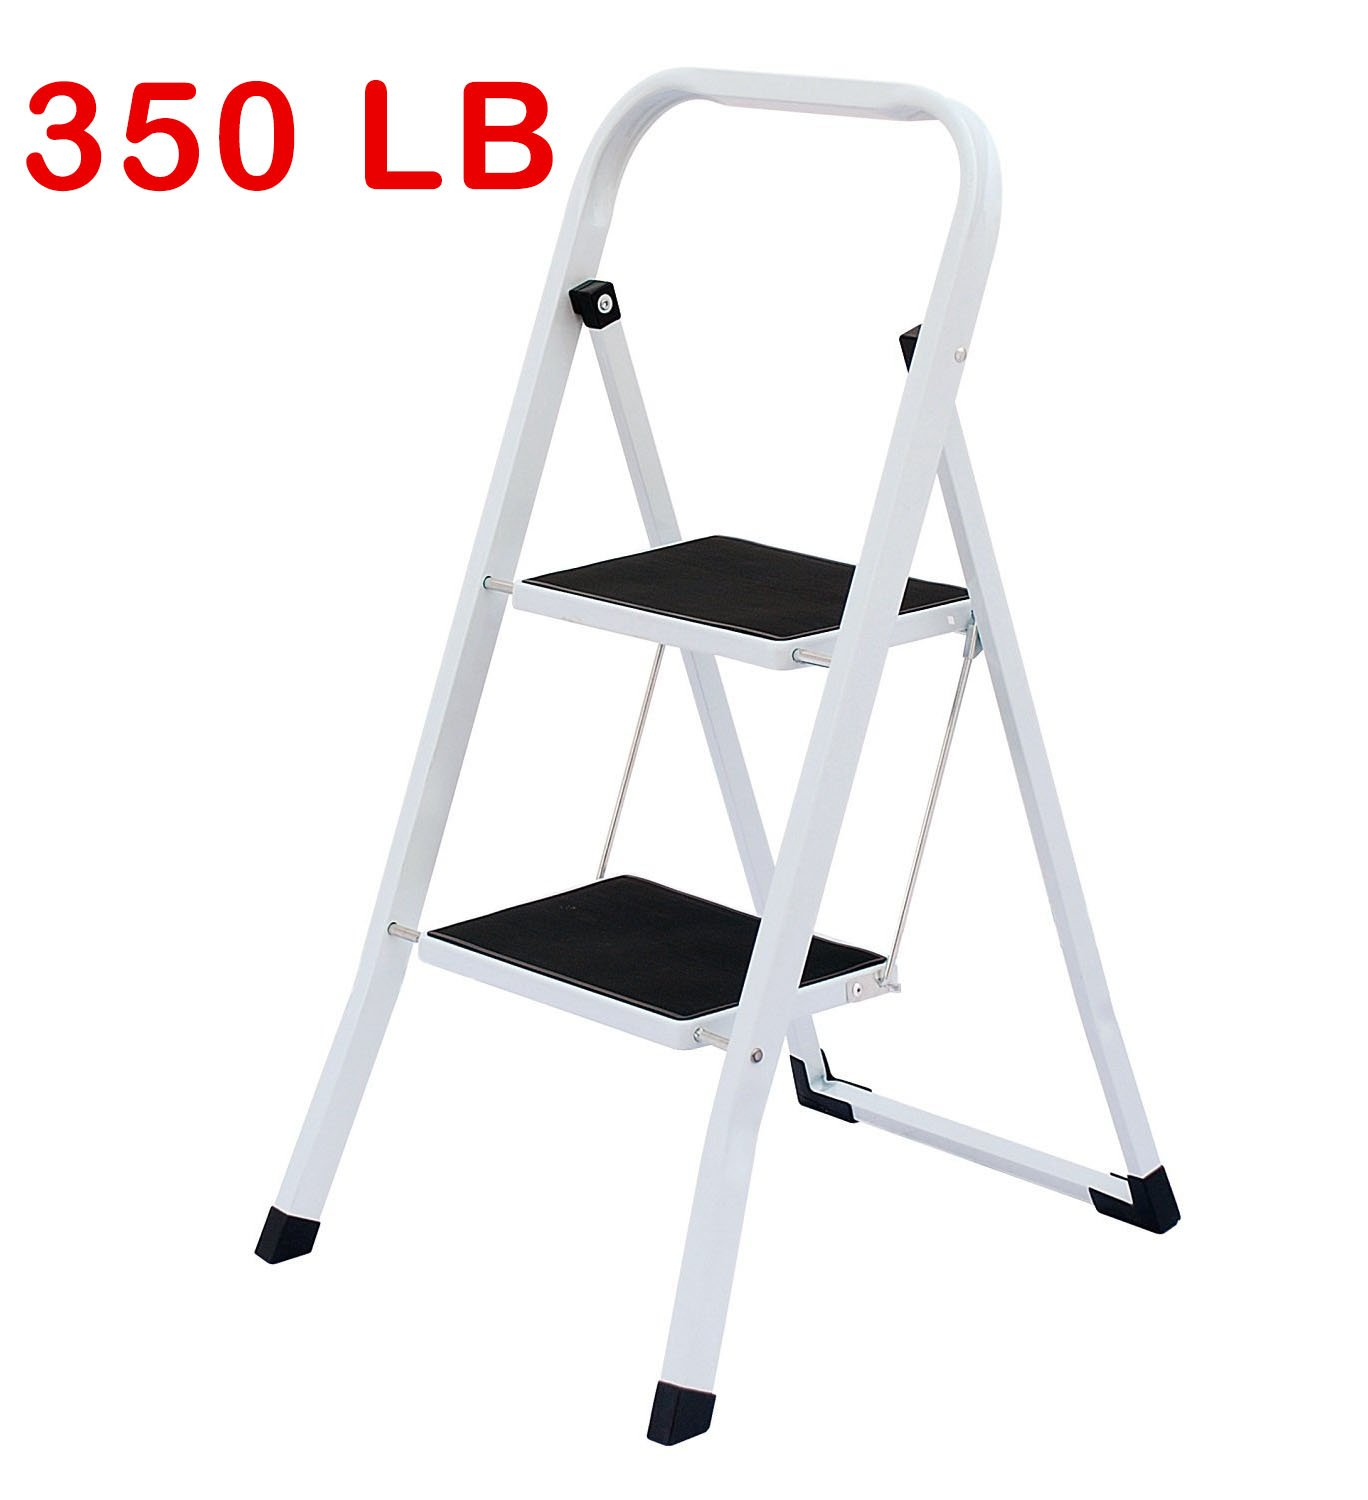 Uniware Heavy Duty Steel Step Ladder with Anti Slip Floors, Max Weight 150 KG/330 LB (2 Step Ladder)